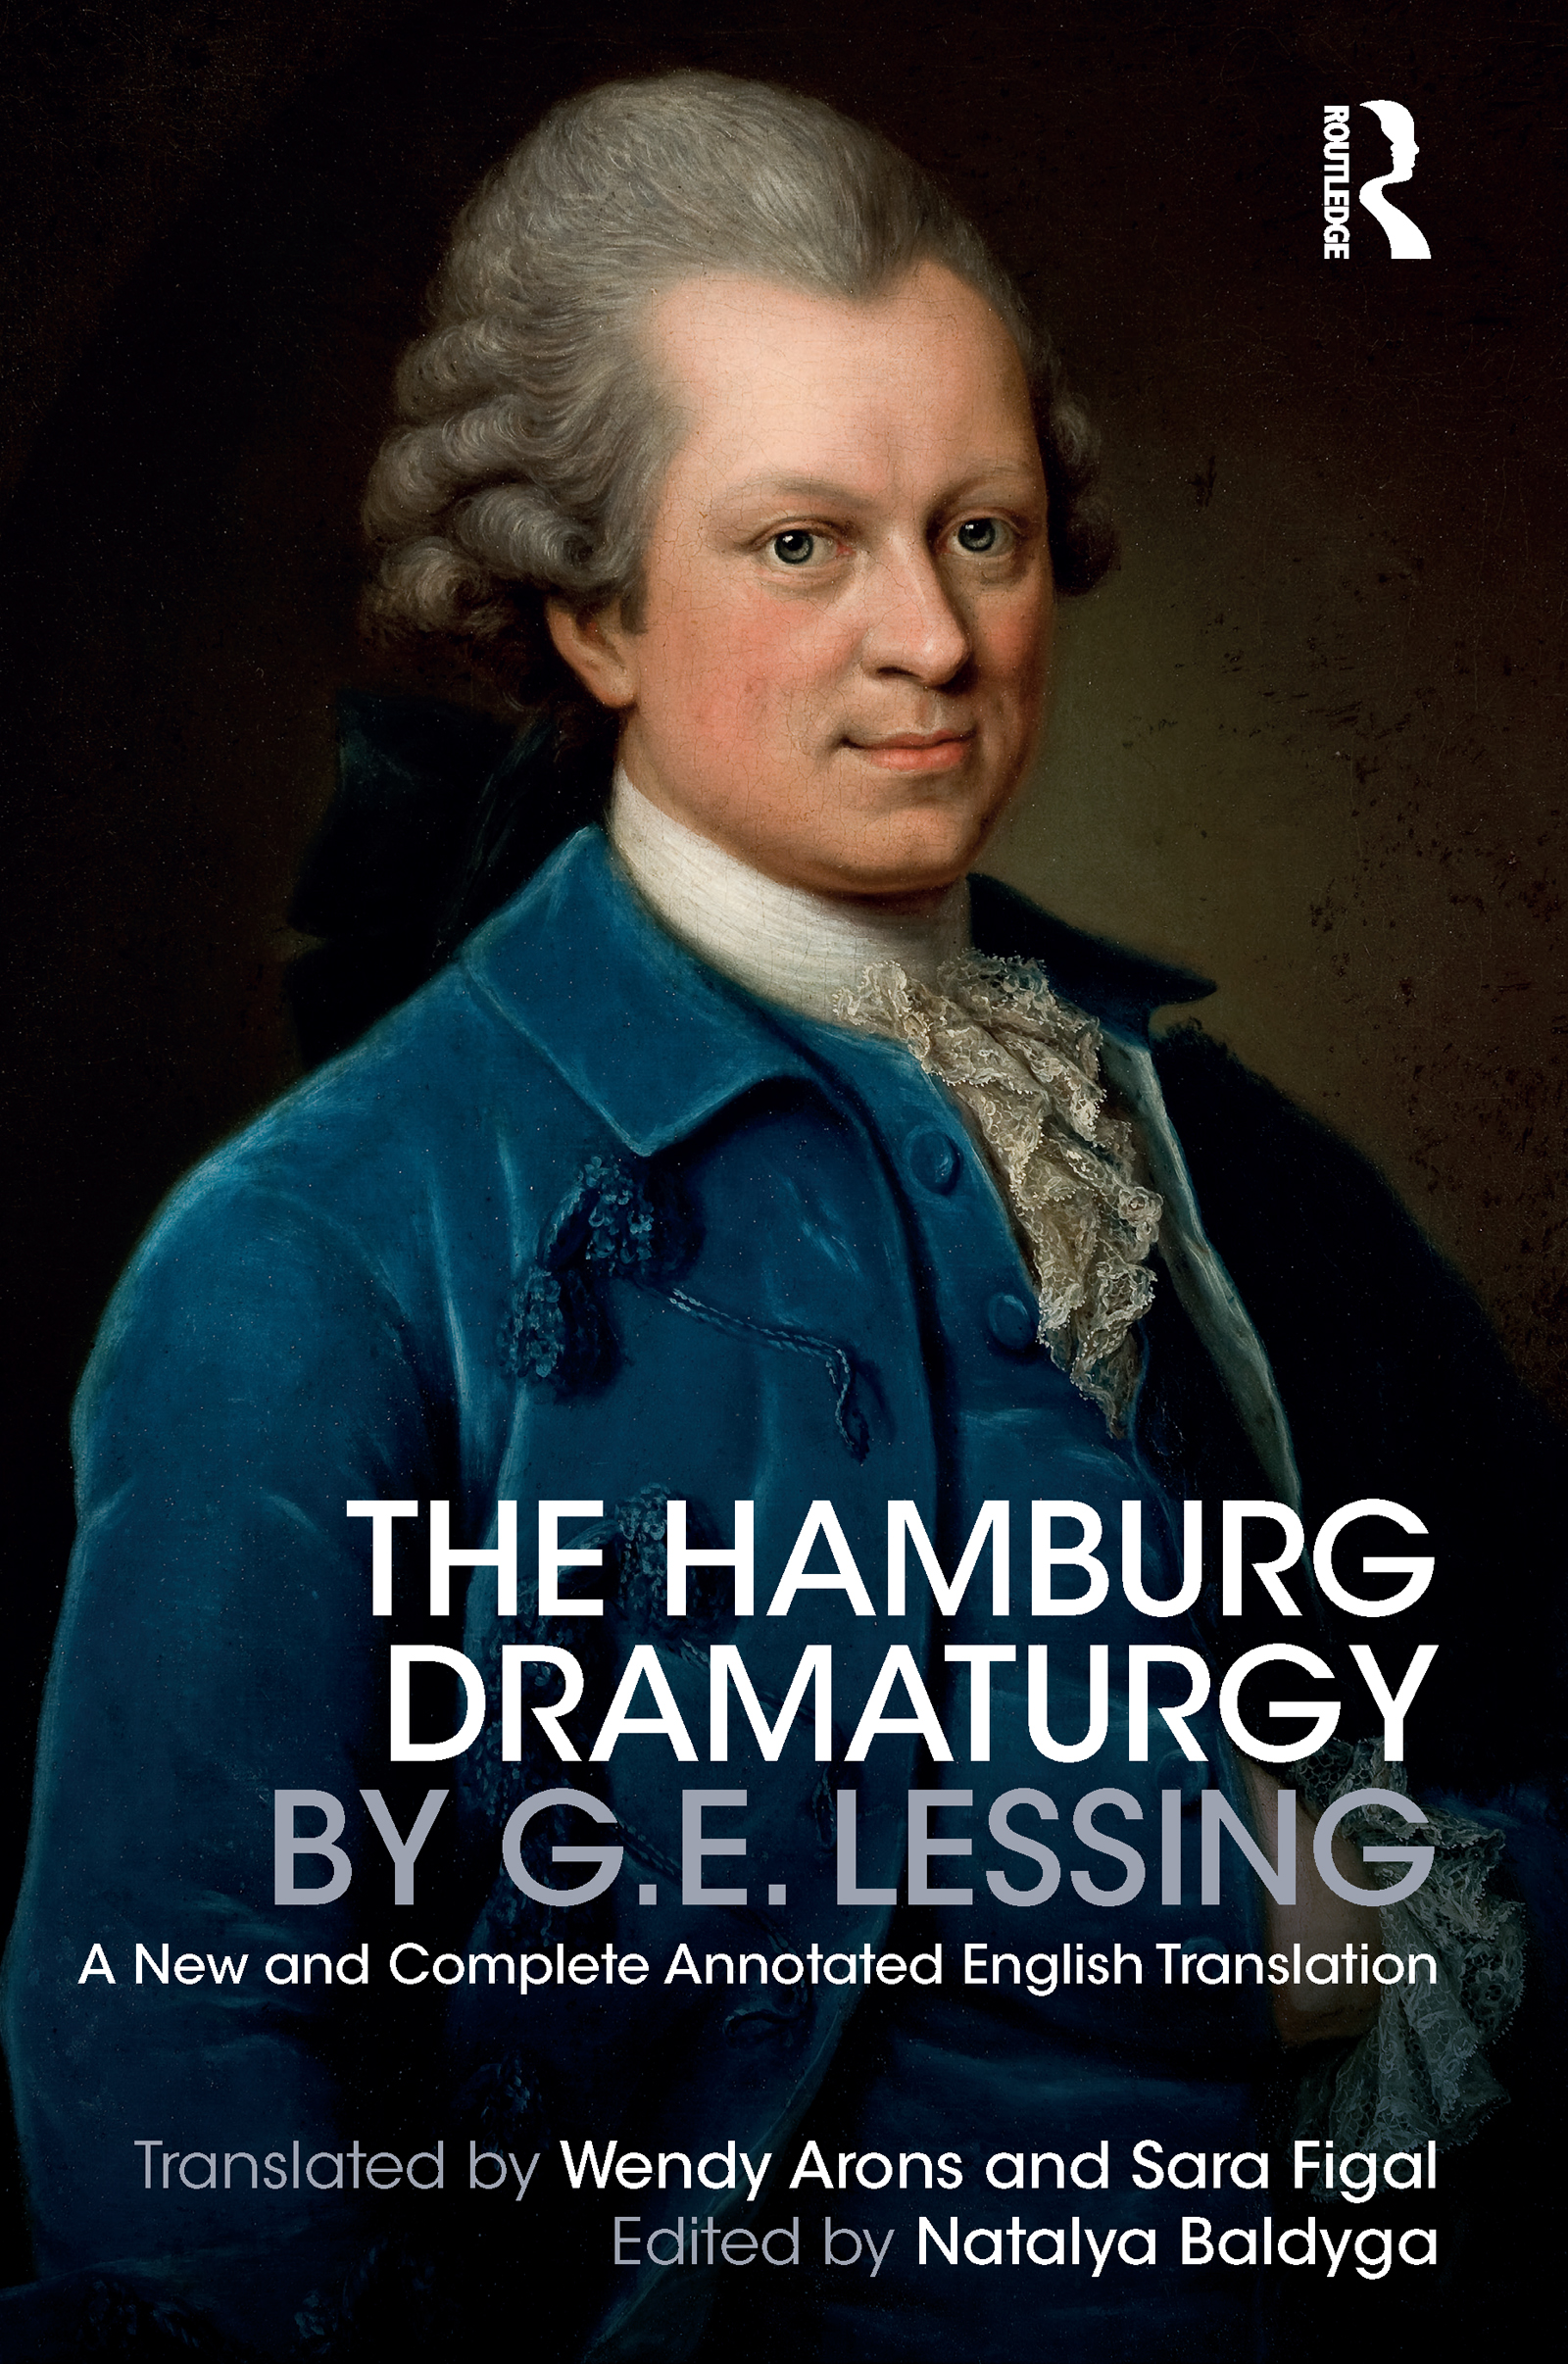 The Hamburg Dramaturgy by G.E. Lessing